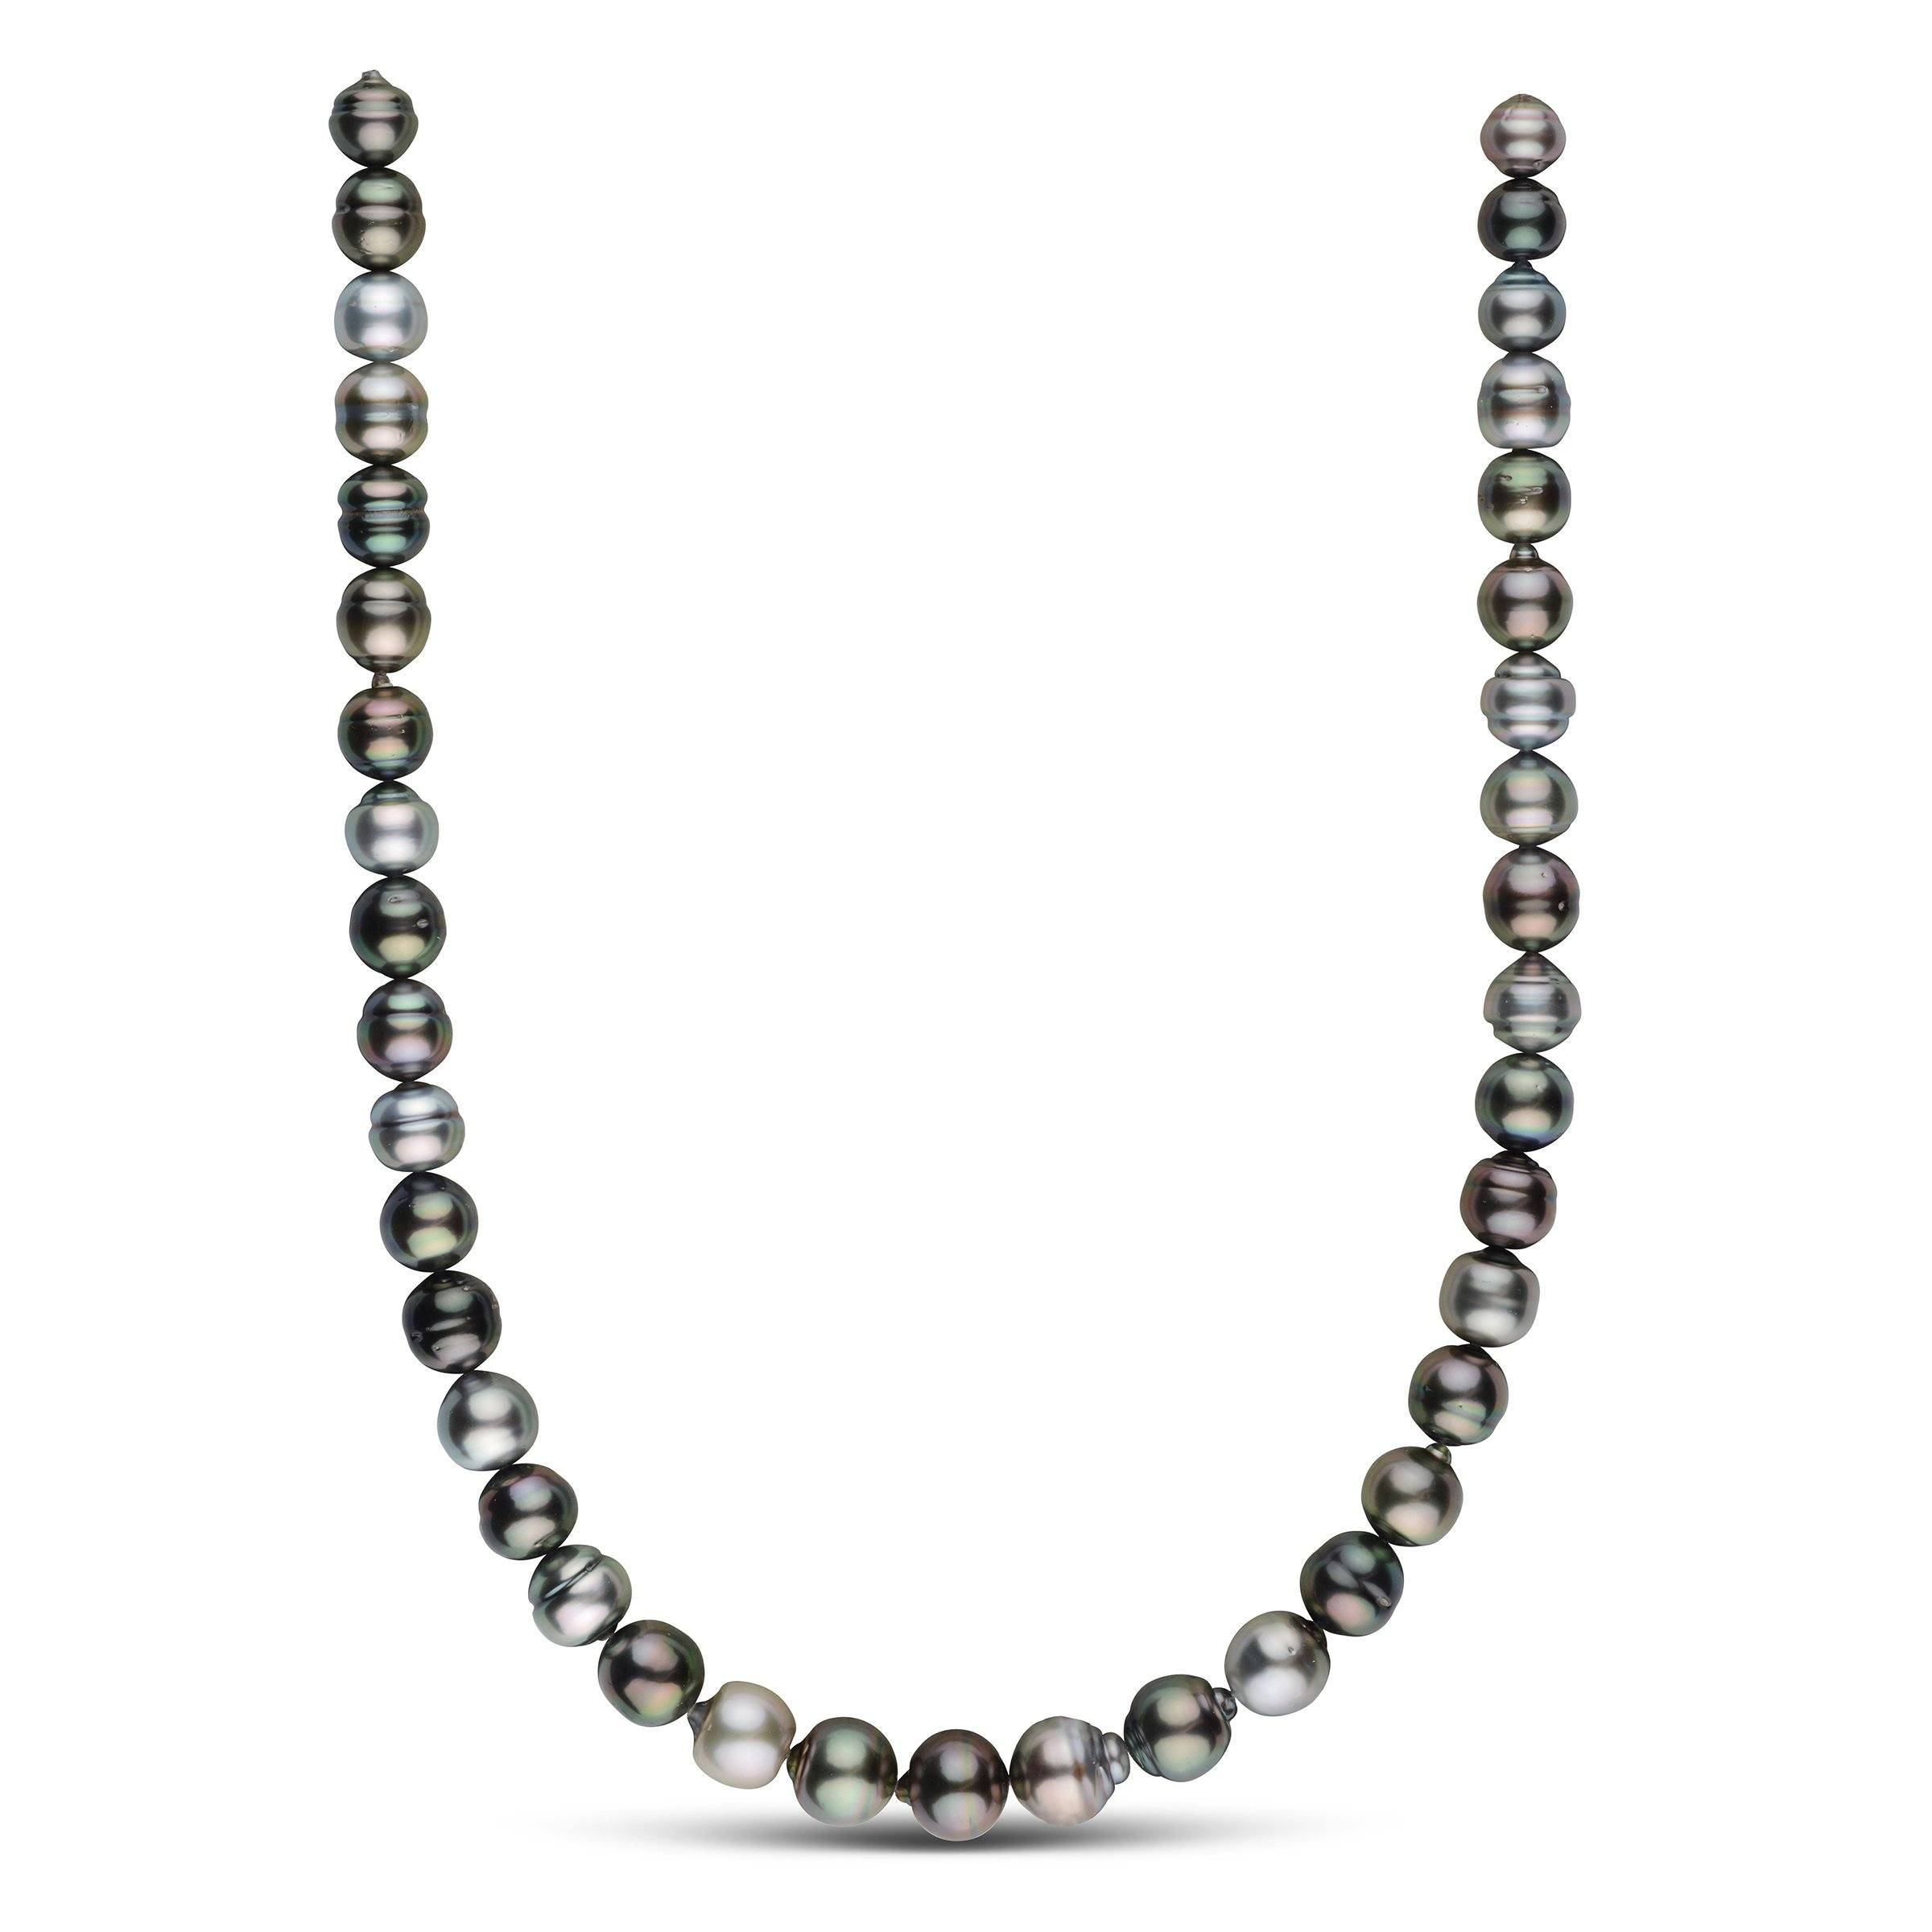 9.0-11.8 mm AA+/AAA Tahitian Baroque Pearl Necklace